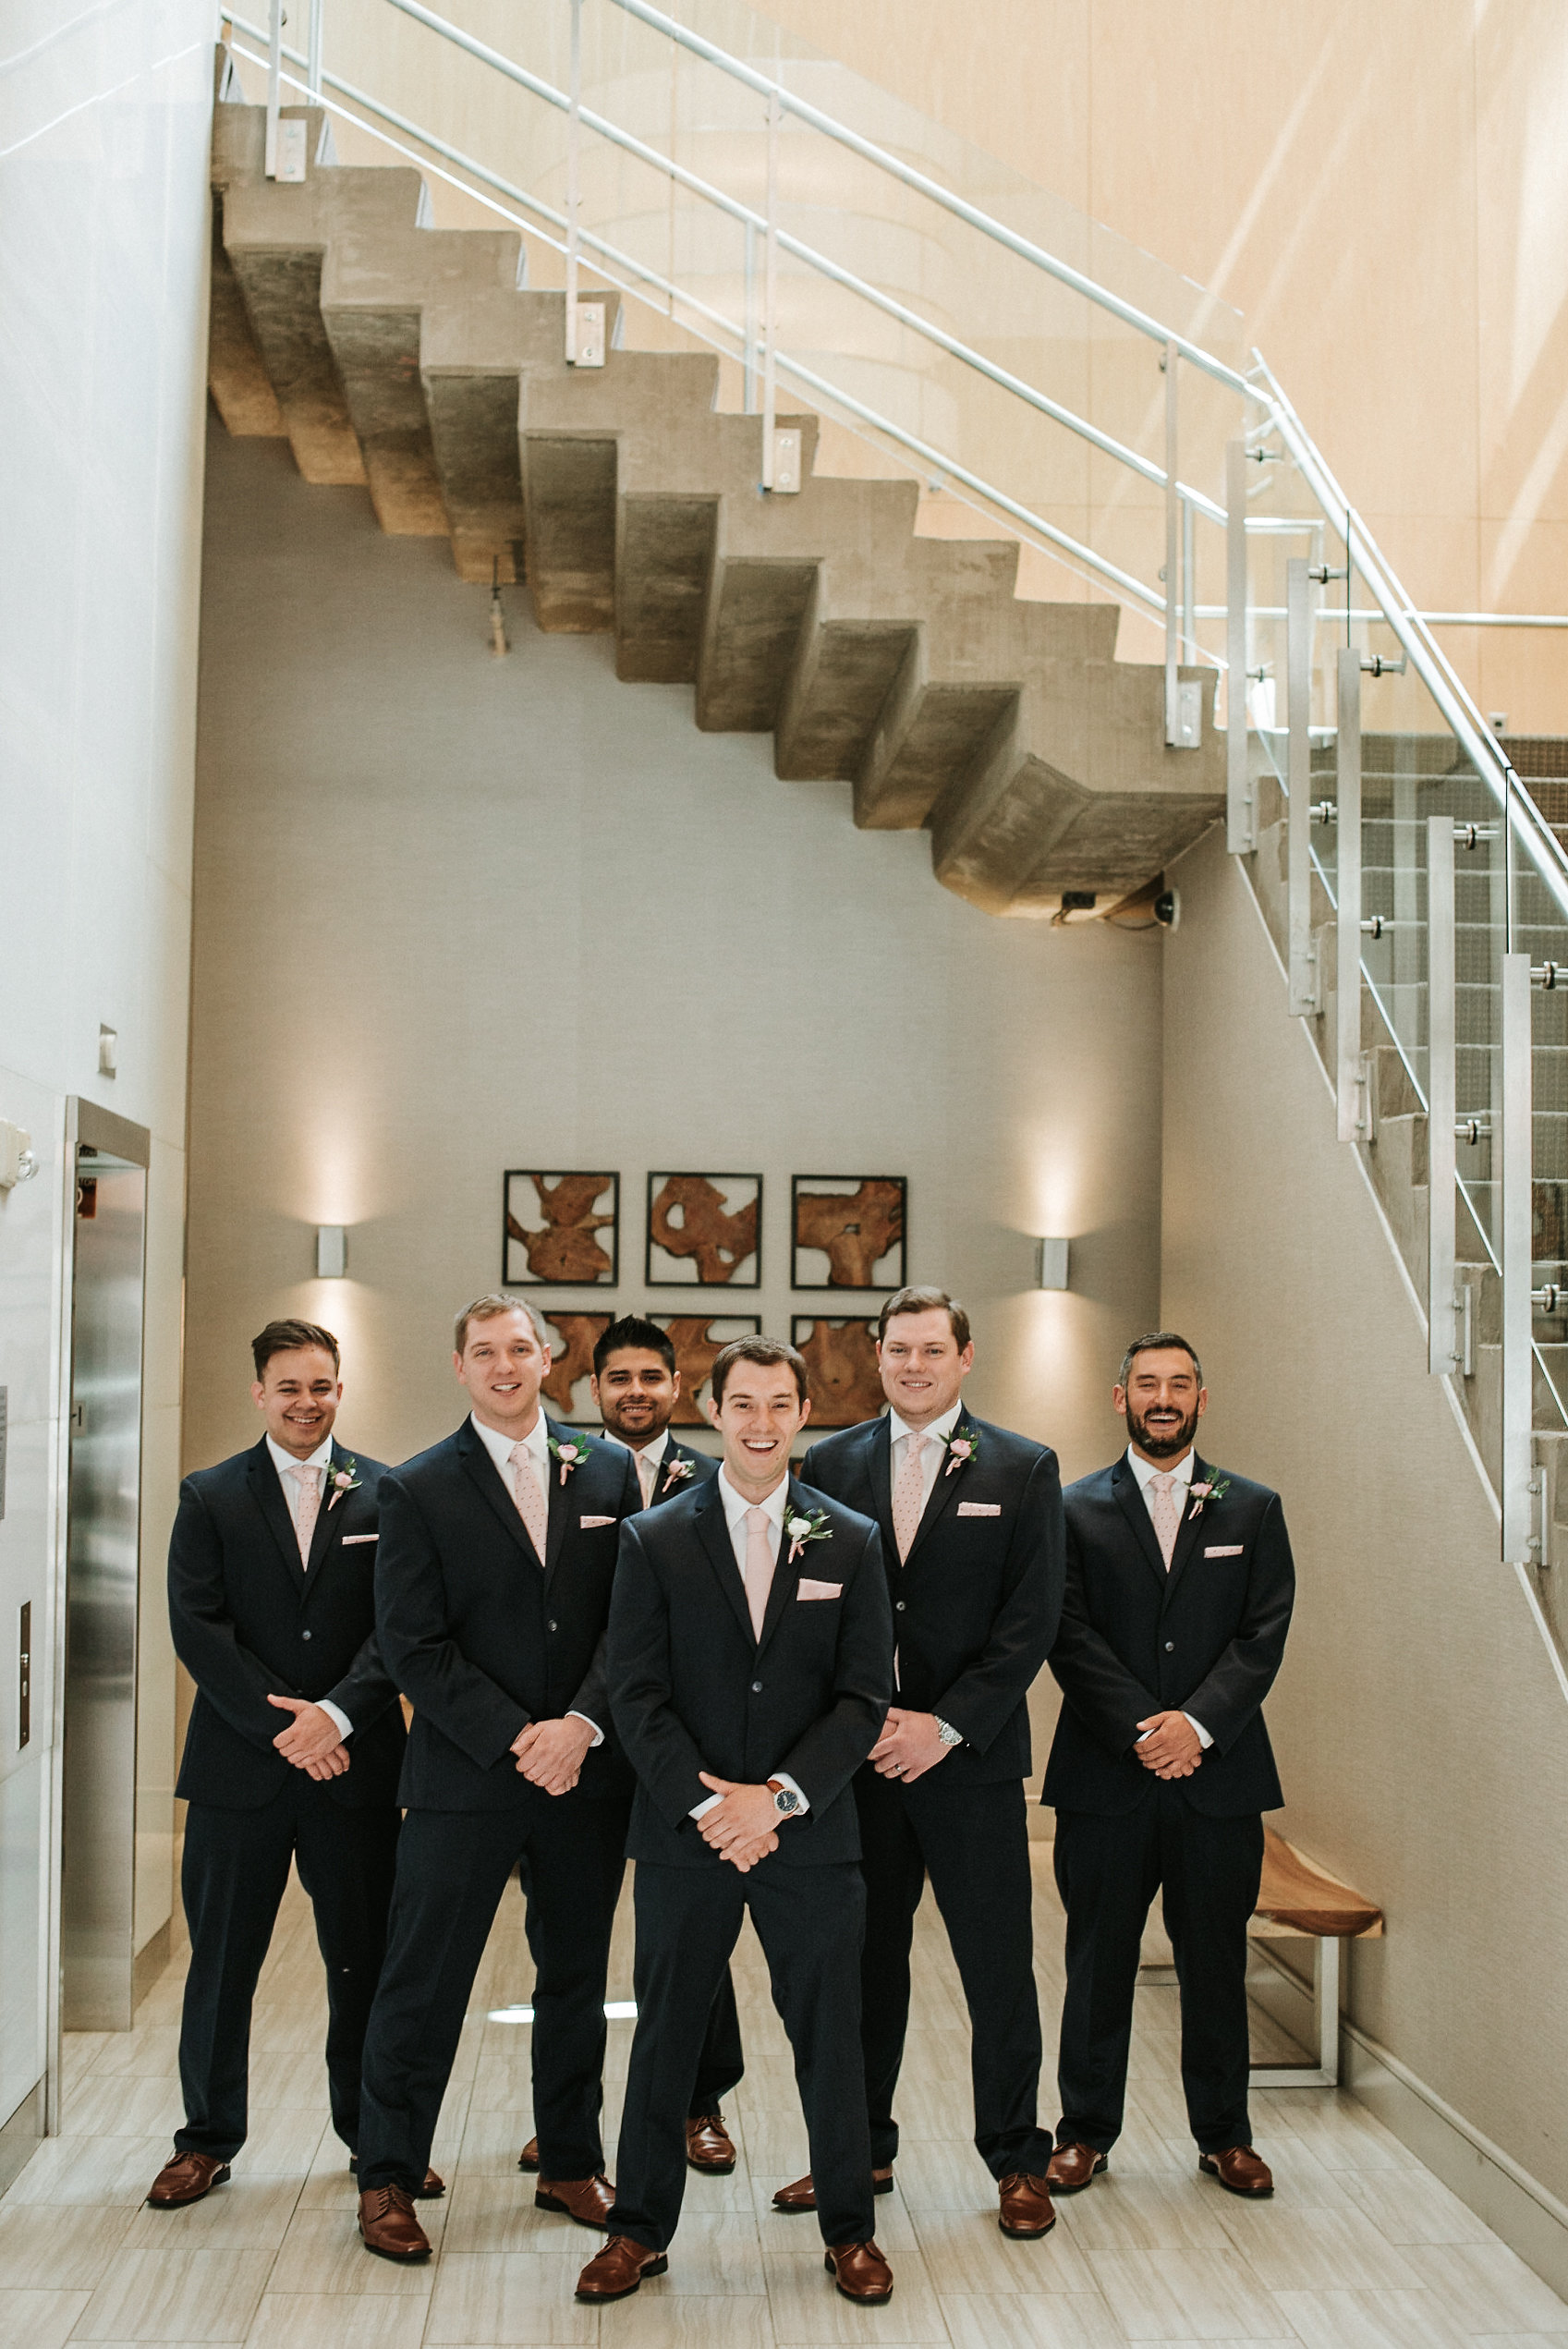 Groom and groomsmen under stairs